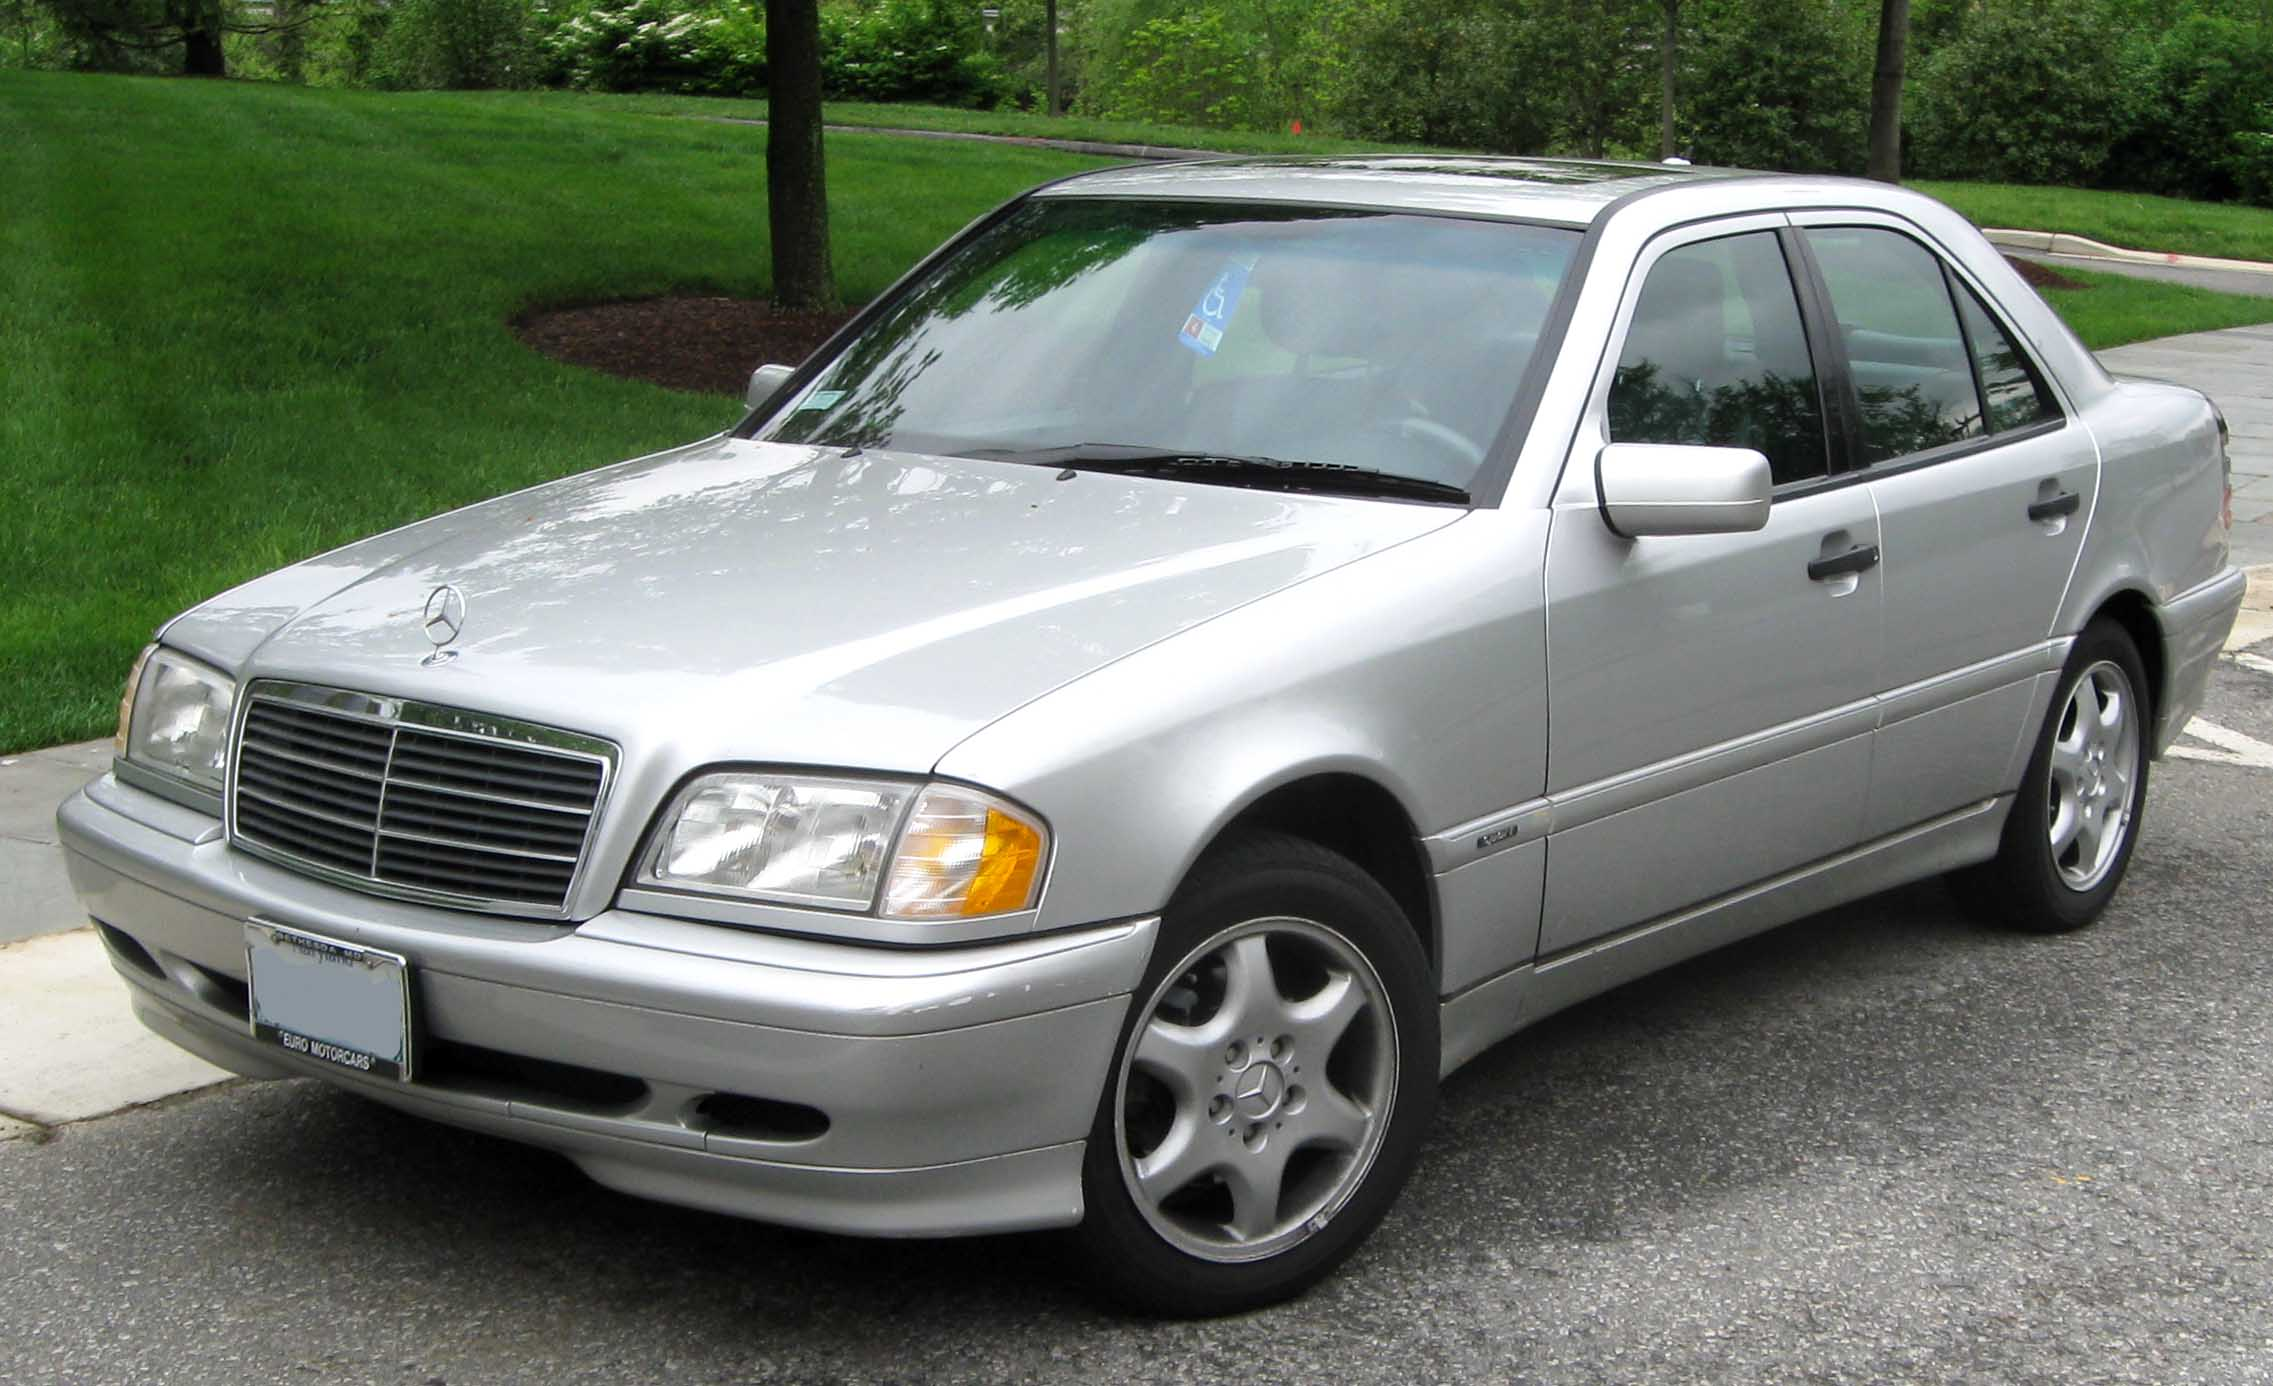 Mercedes Benz C 280 Technical Details History Photos On